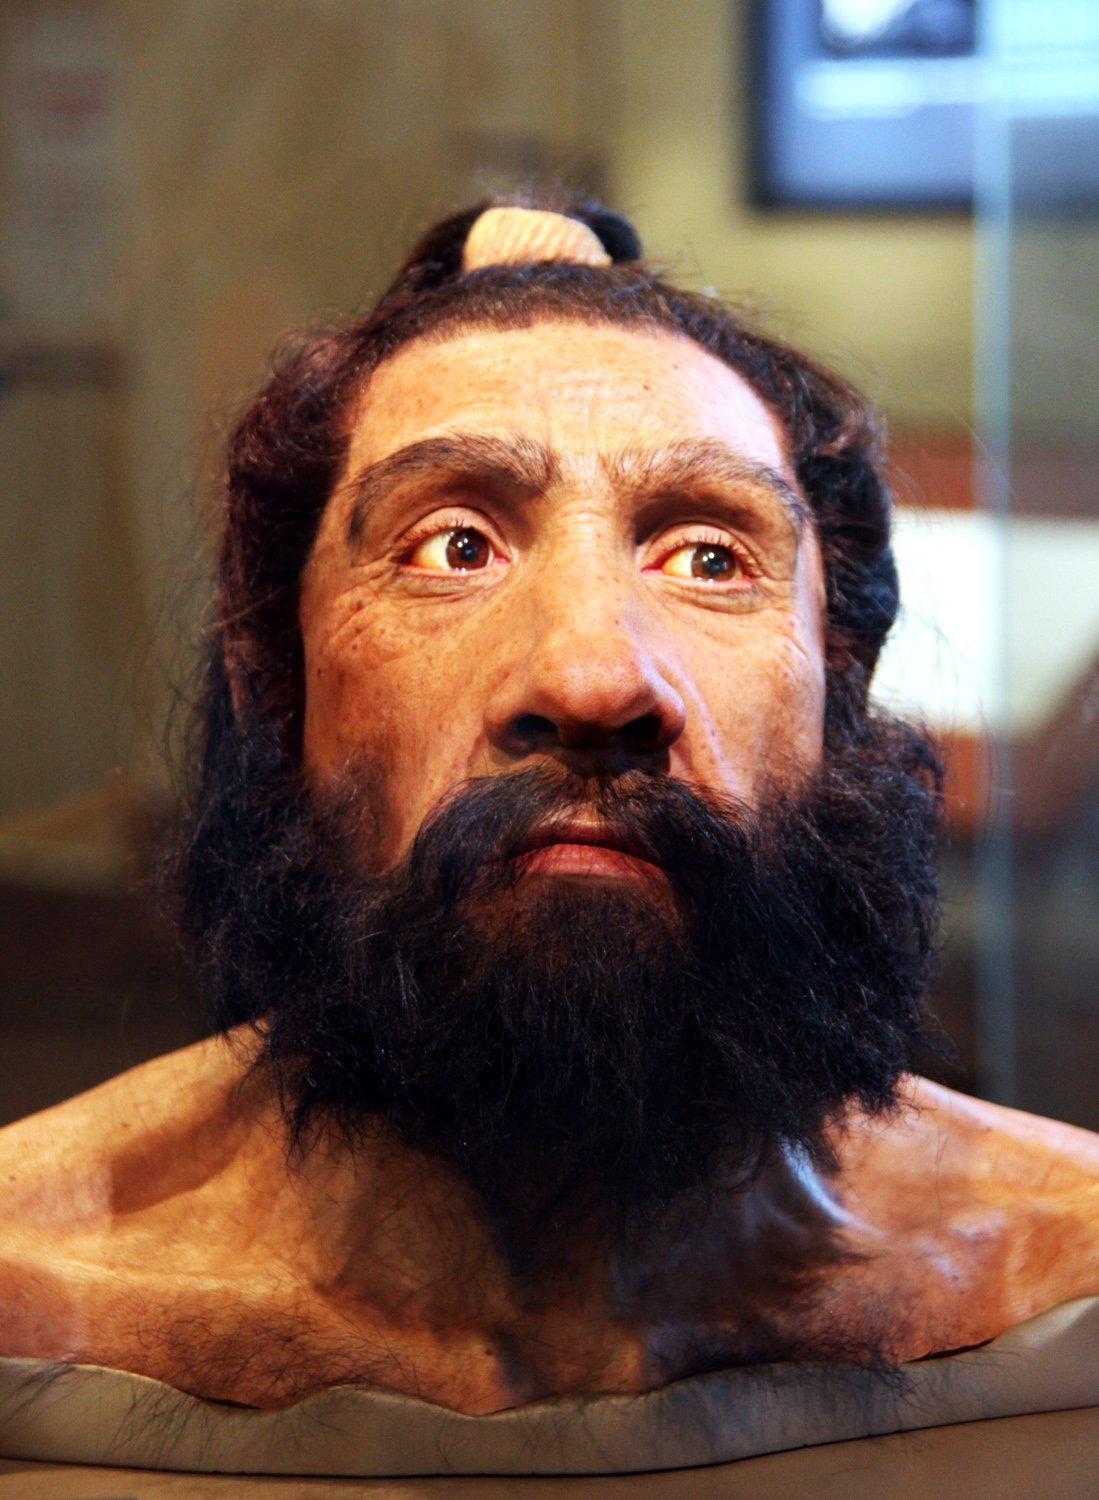 how much dna do we share with neanderthals